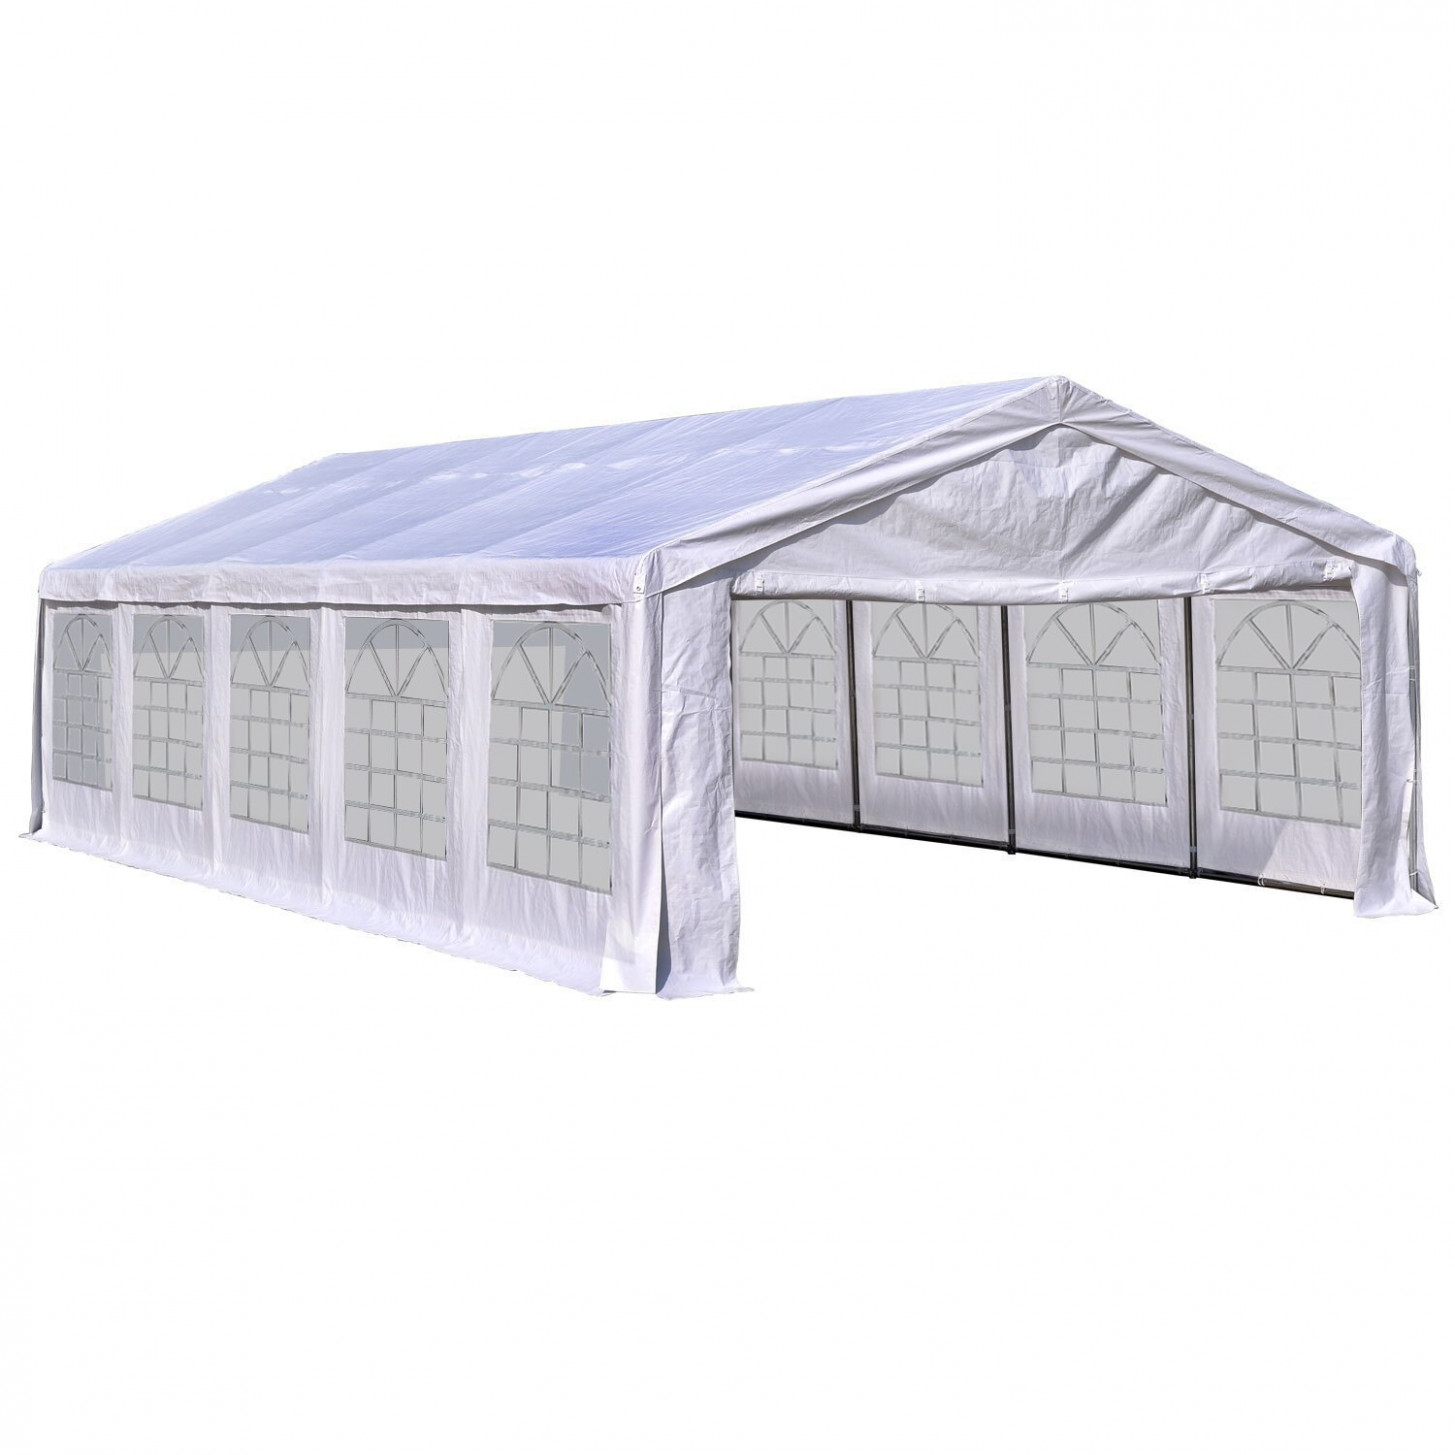 Aosom: Outsunny 9'W X 9'D Outdoor Carport Canopy Party Tent With ..